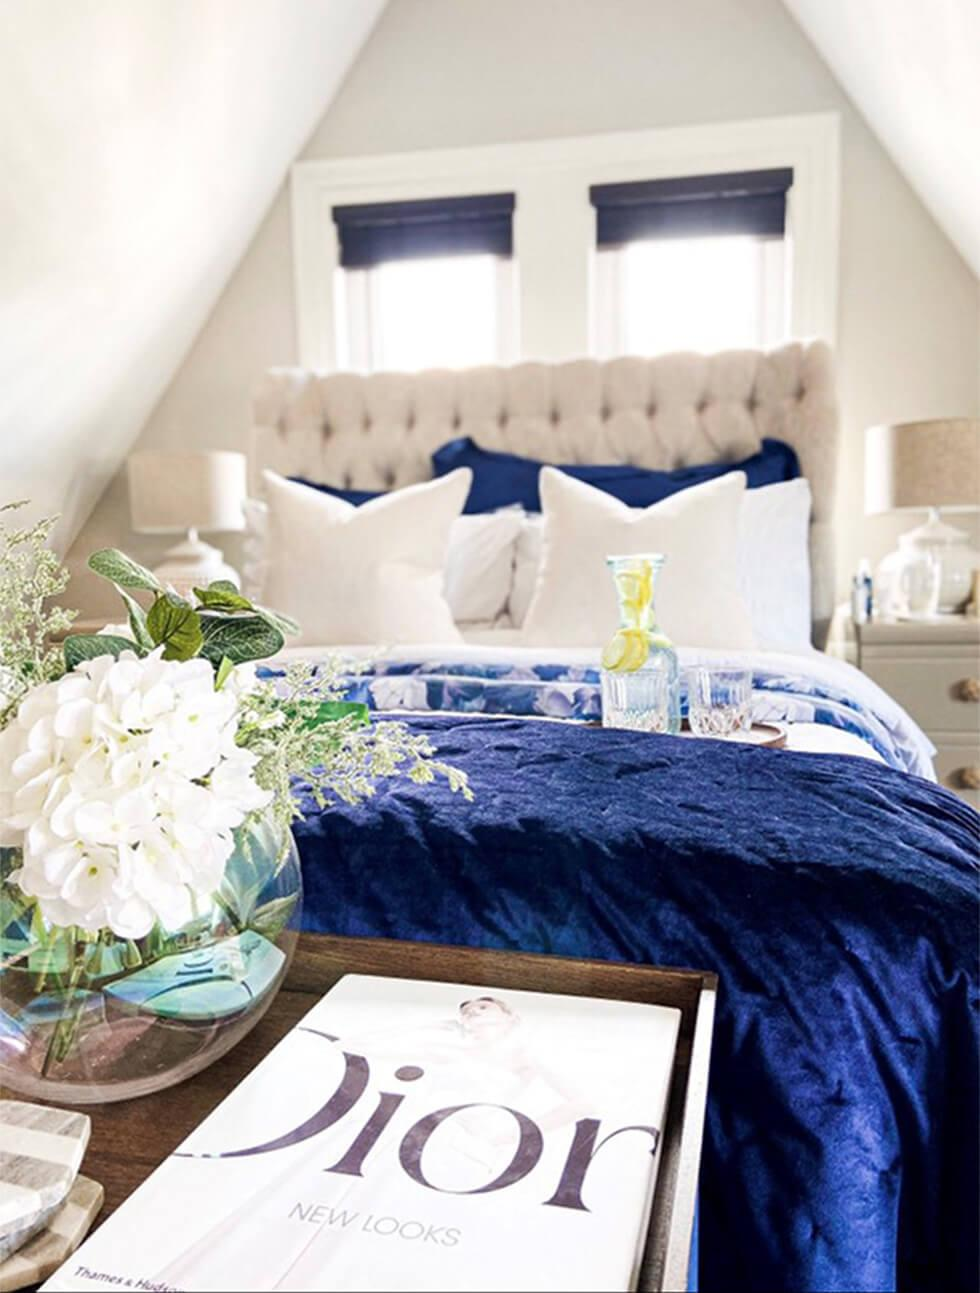 bedroom with farmhouse decor and blue bedding